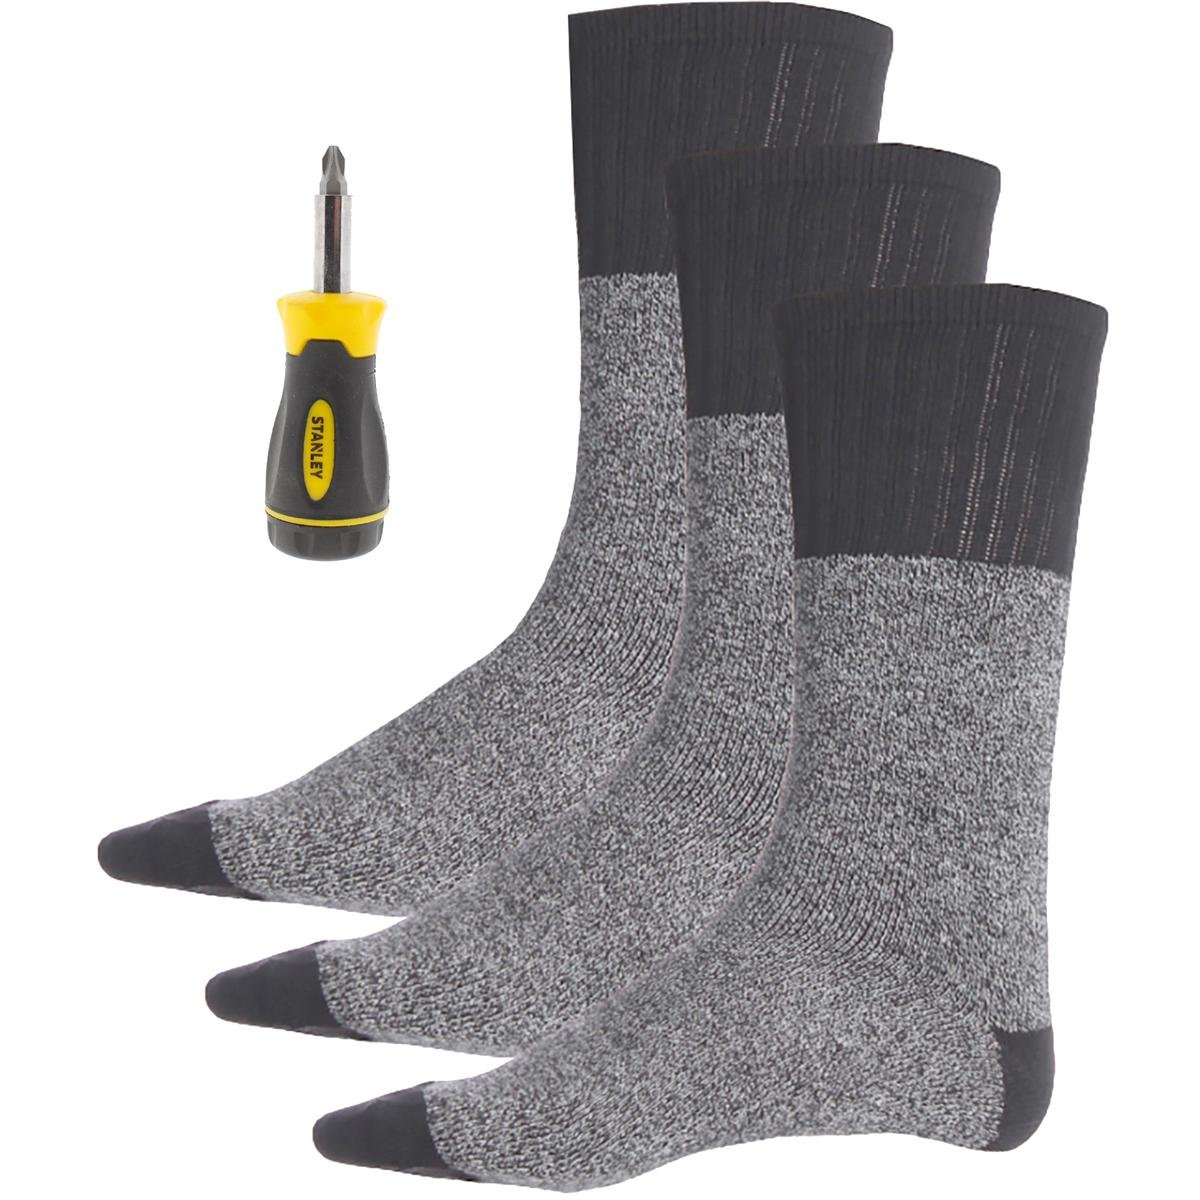 Stanley Mens 3 Pack Gift Set Thermal Socks Black 10-13 at Amazon Mens Clothing store: